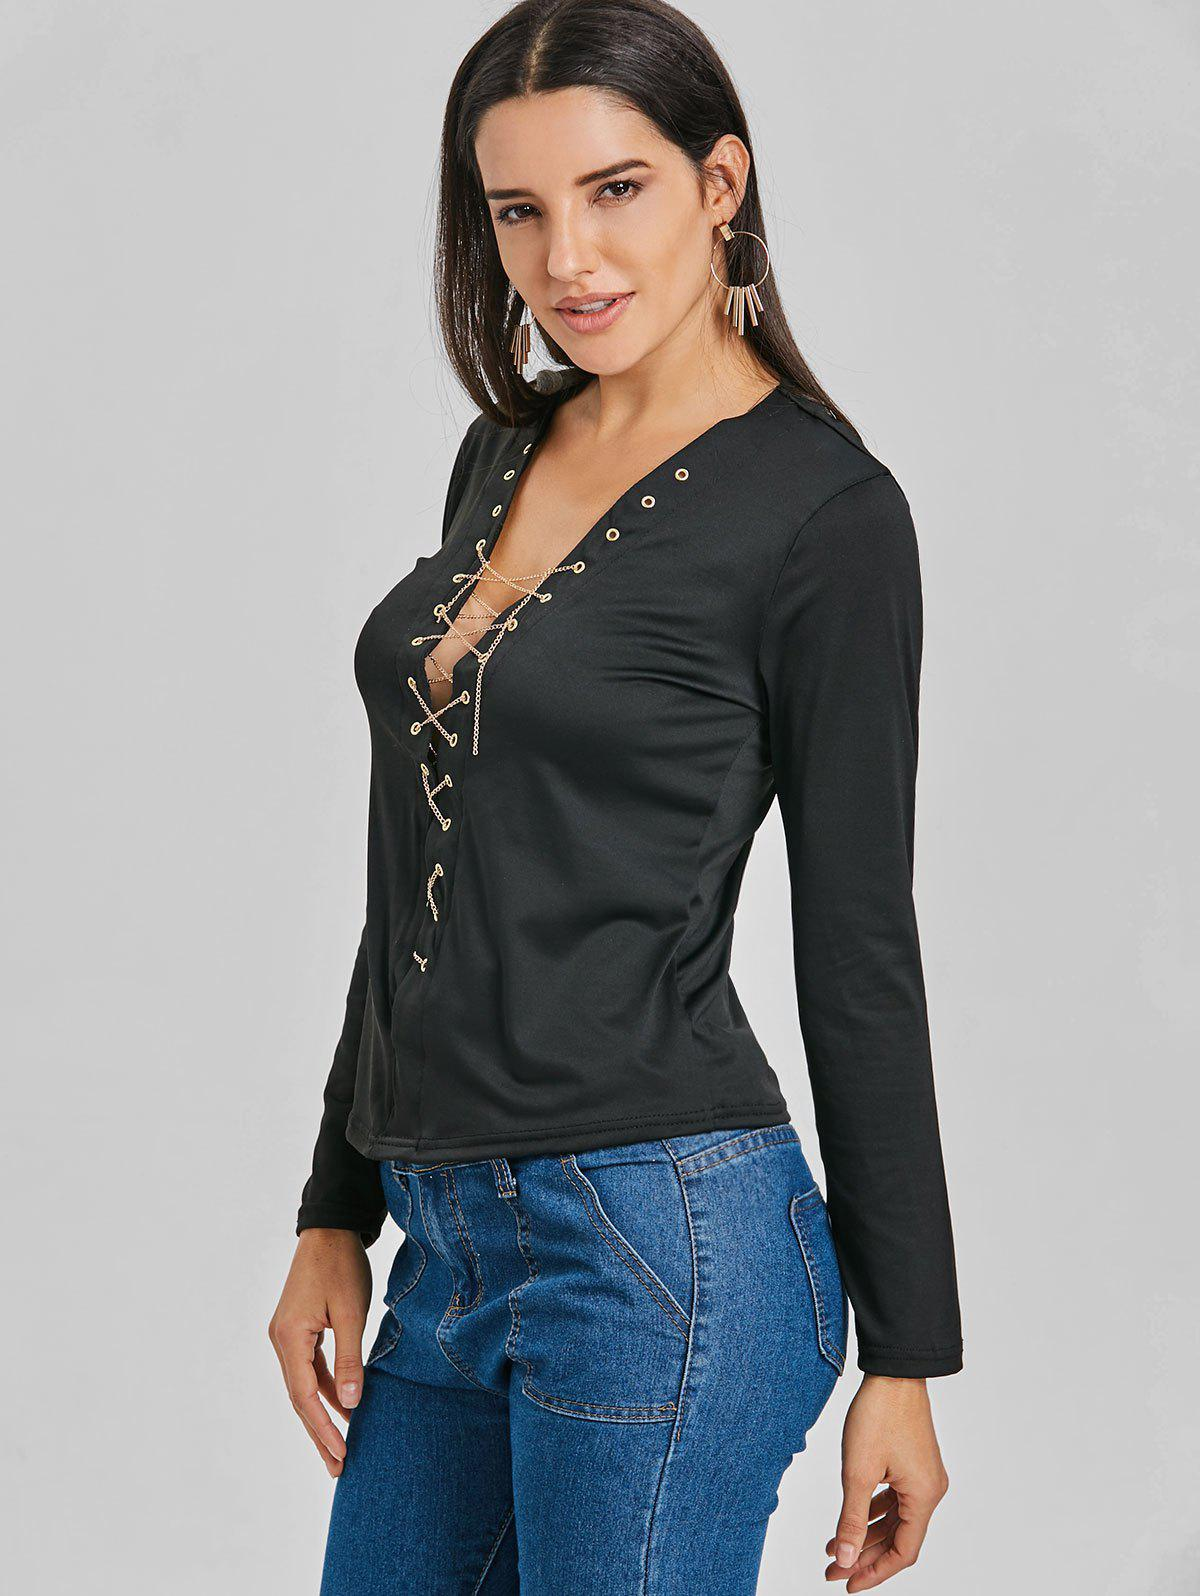 Long Sleeve Lace Up Chain Top - BLACK XL